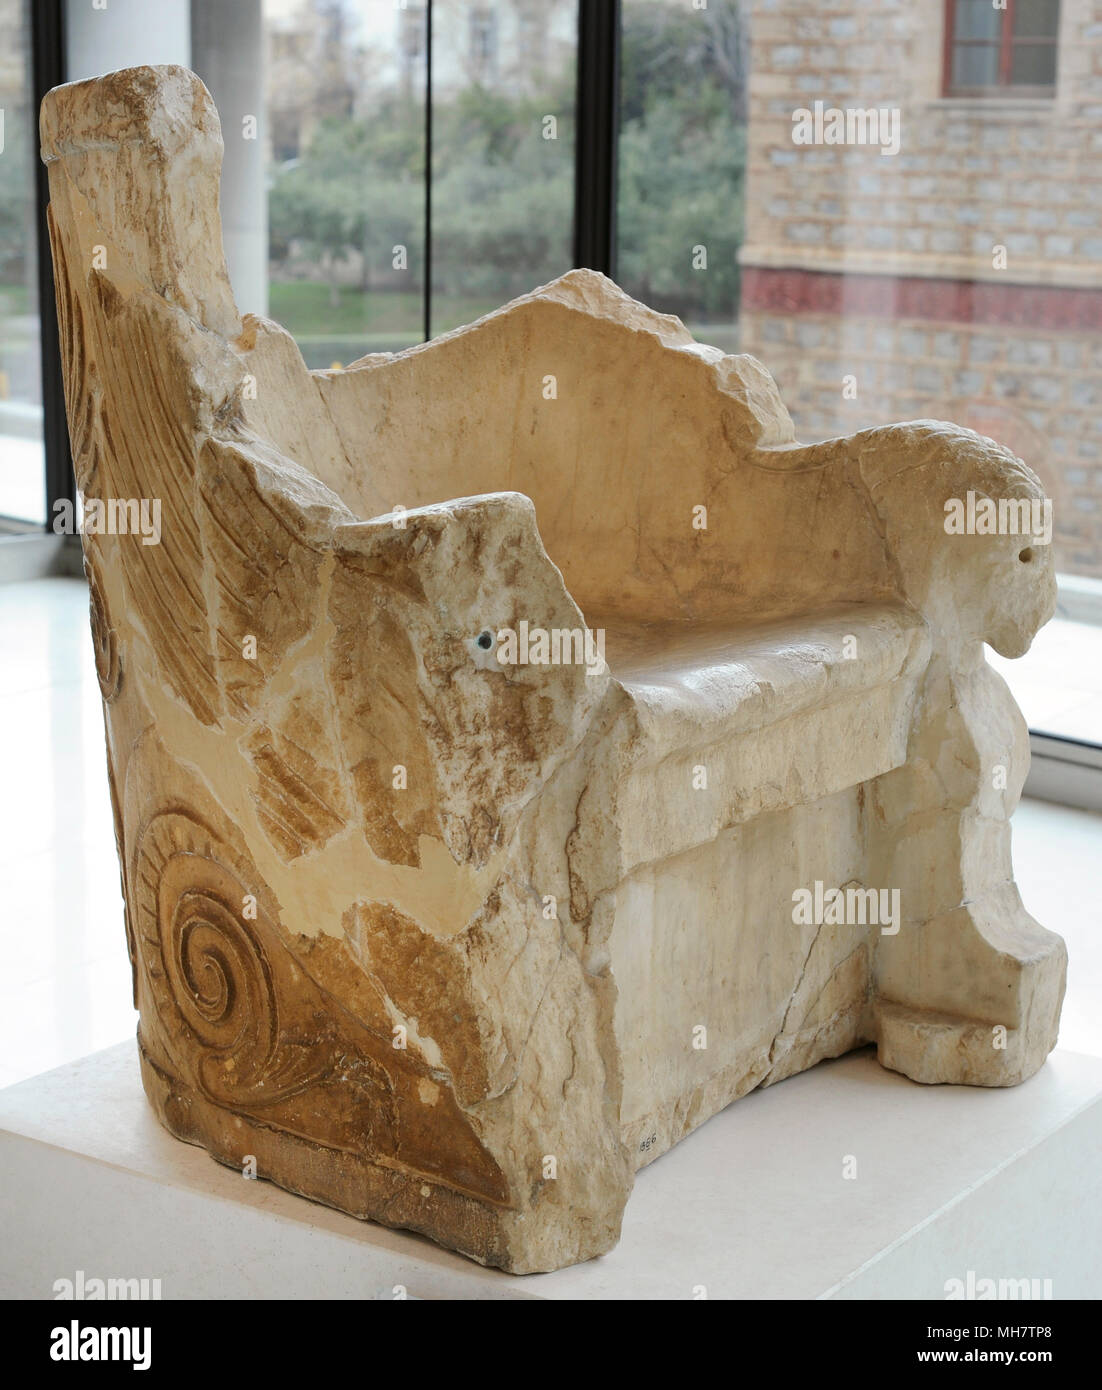 Marble throne. Throne from an earlier public building that was later used as an Episcopal throne in the Parthenon after its conversion into a Christian church in the 6th century AD. Dated between 3rd century BC and 2nd century BC. Acropolis Museum. Athens. Greece. - Stock Image